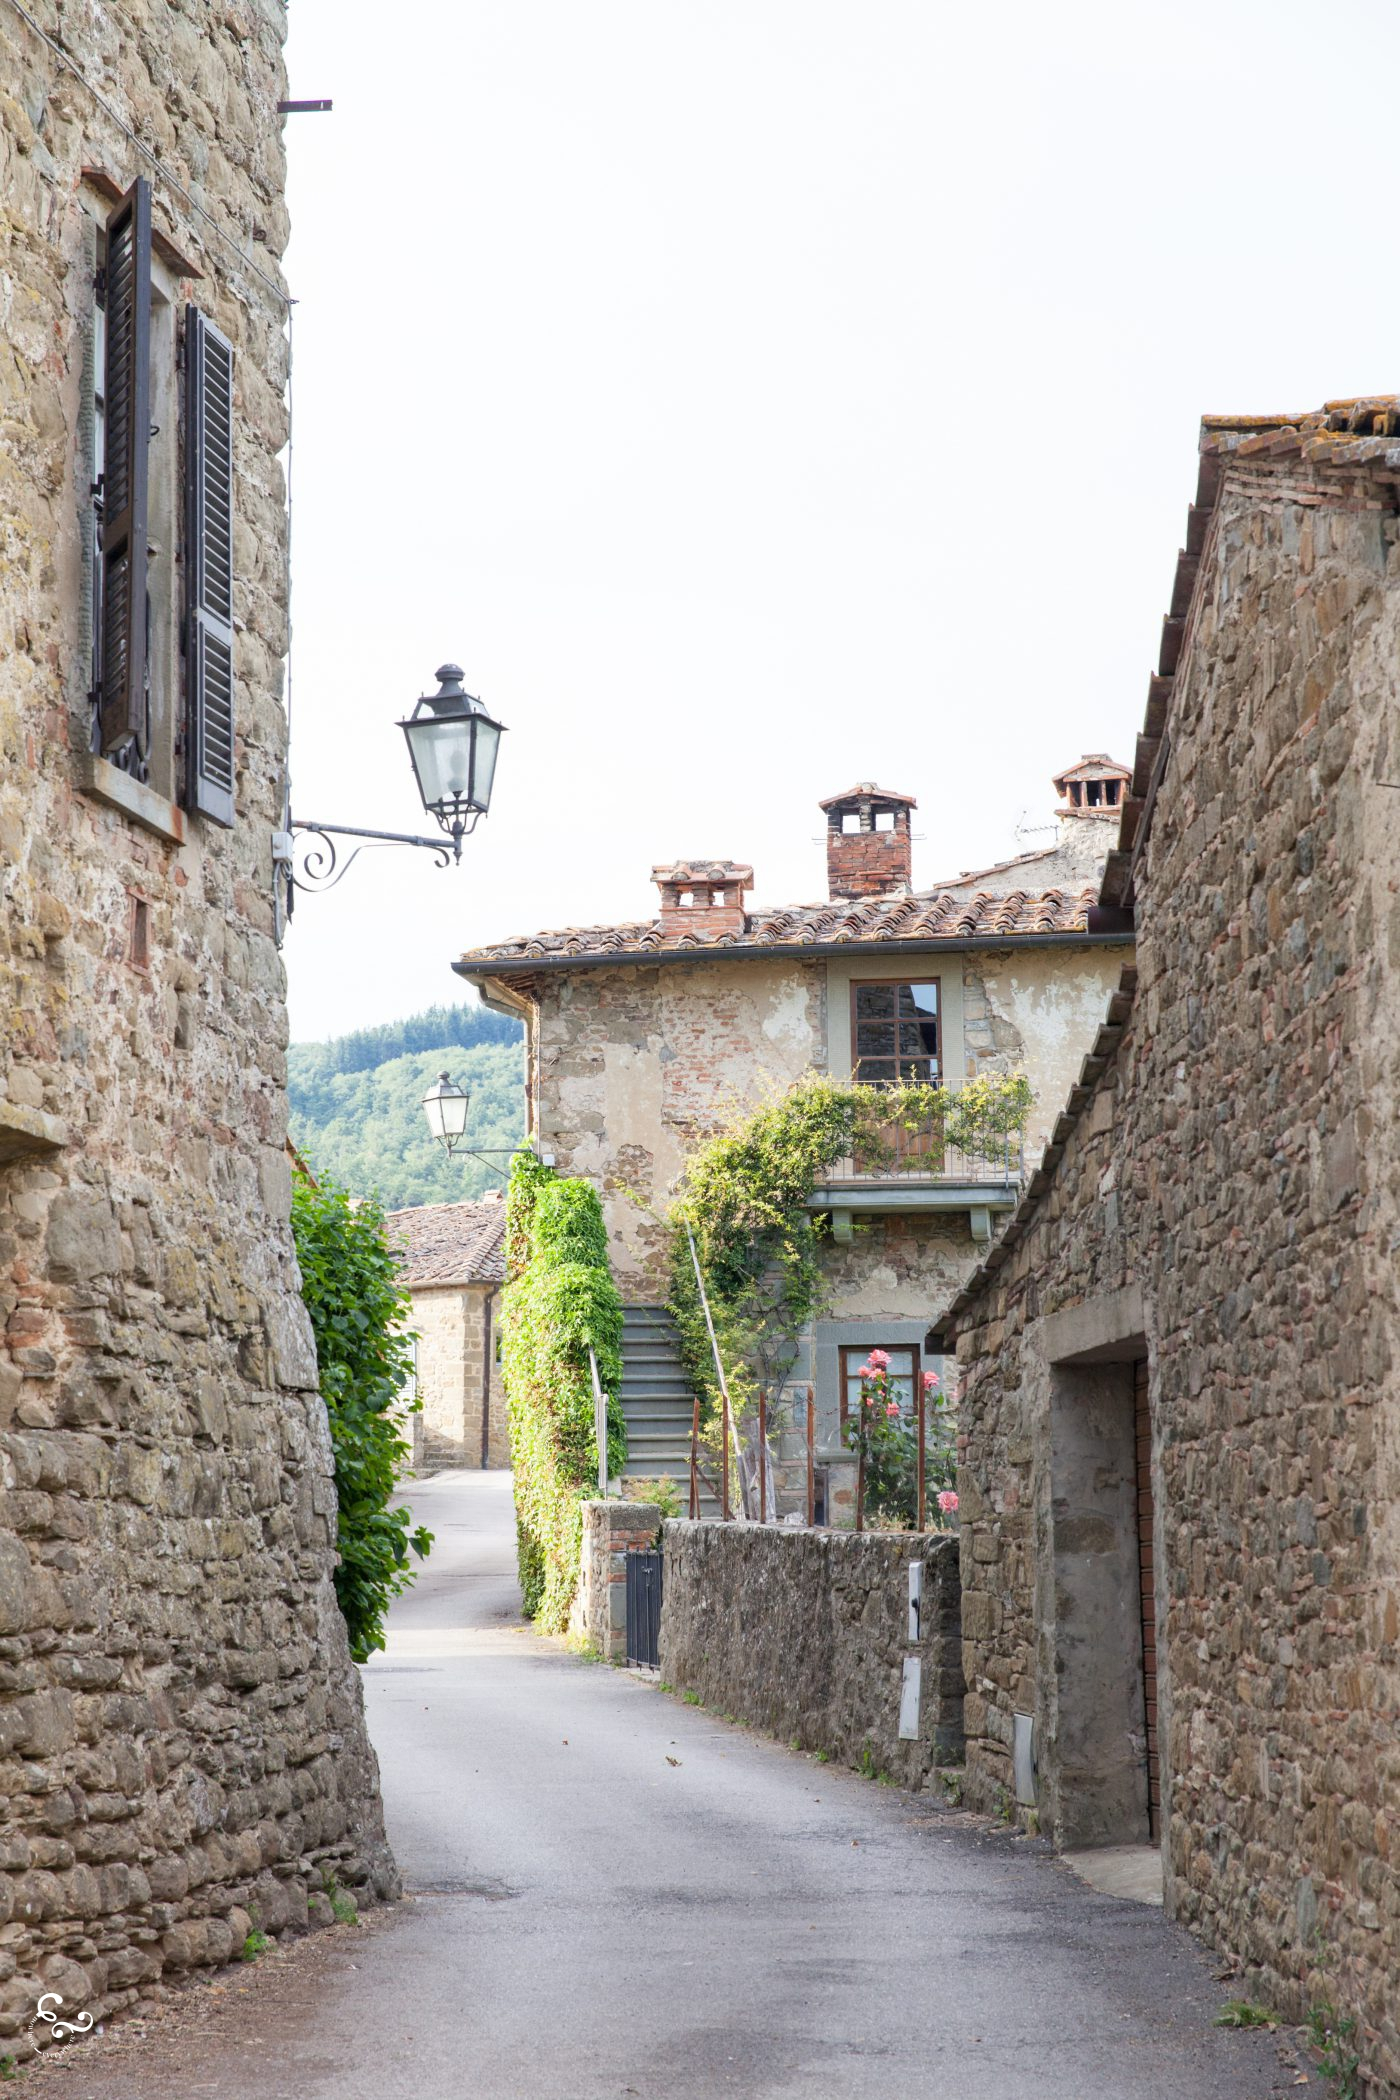 Volpaia Chianti Tuscany, Italy Nowhere & Everywhere Lis Dingjan Free Range Pixels Travel Photography Cute Towns Sustainability Charming Instagram Europe